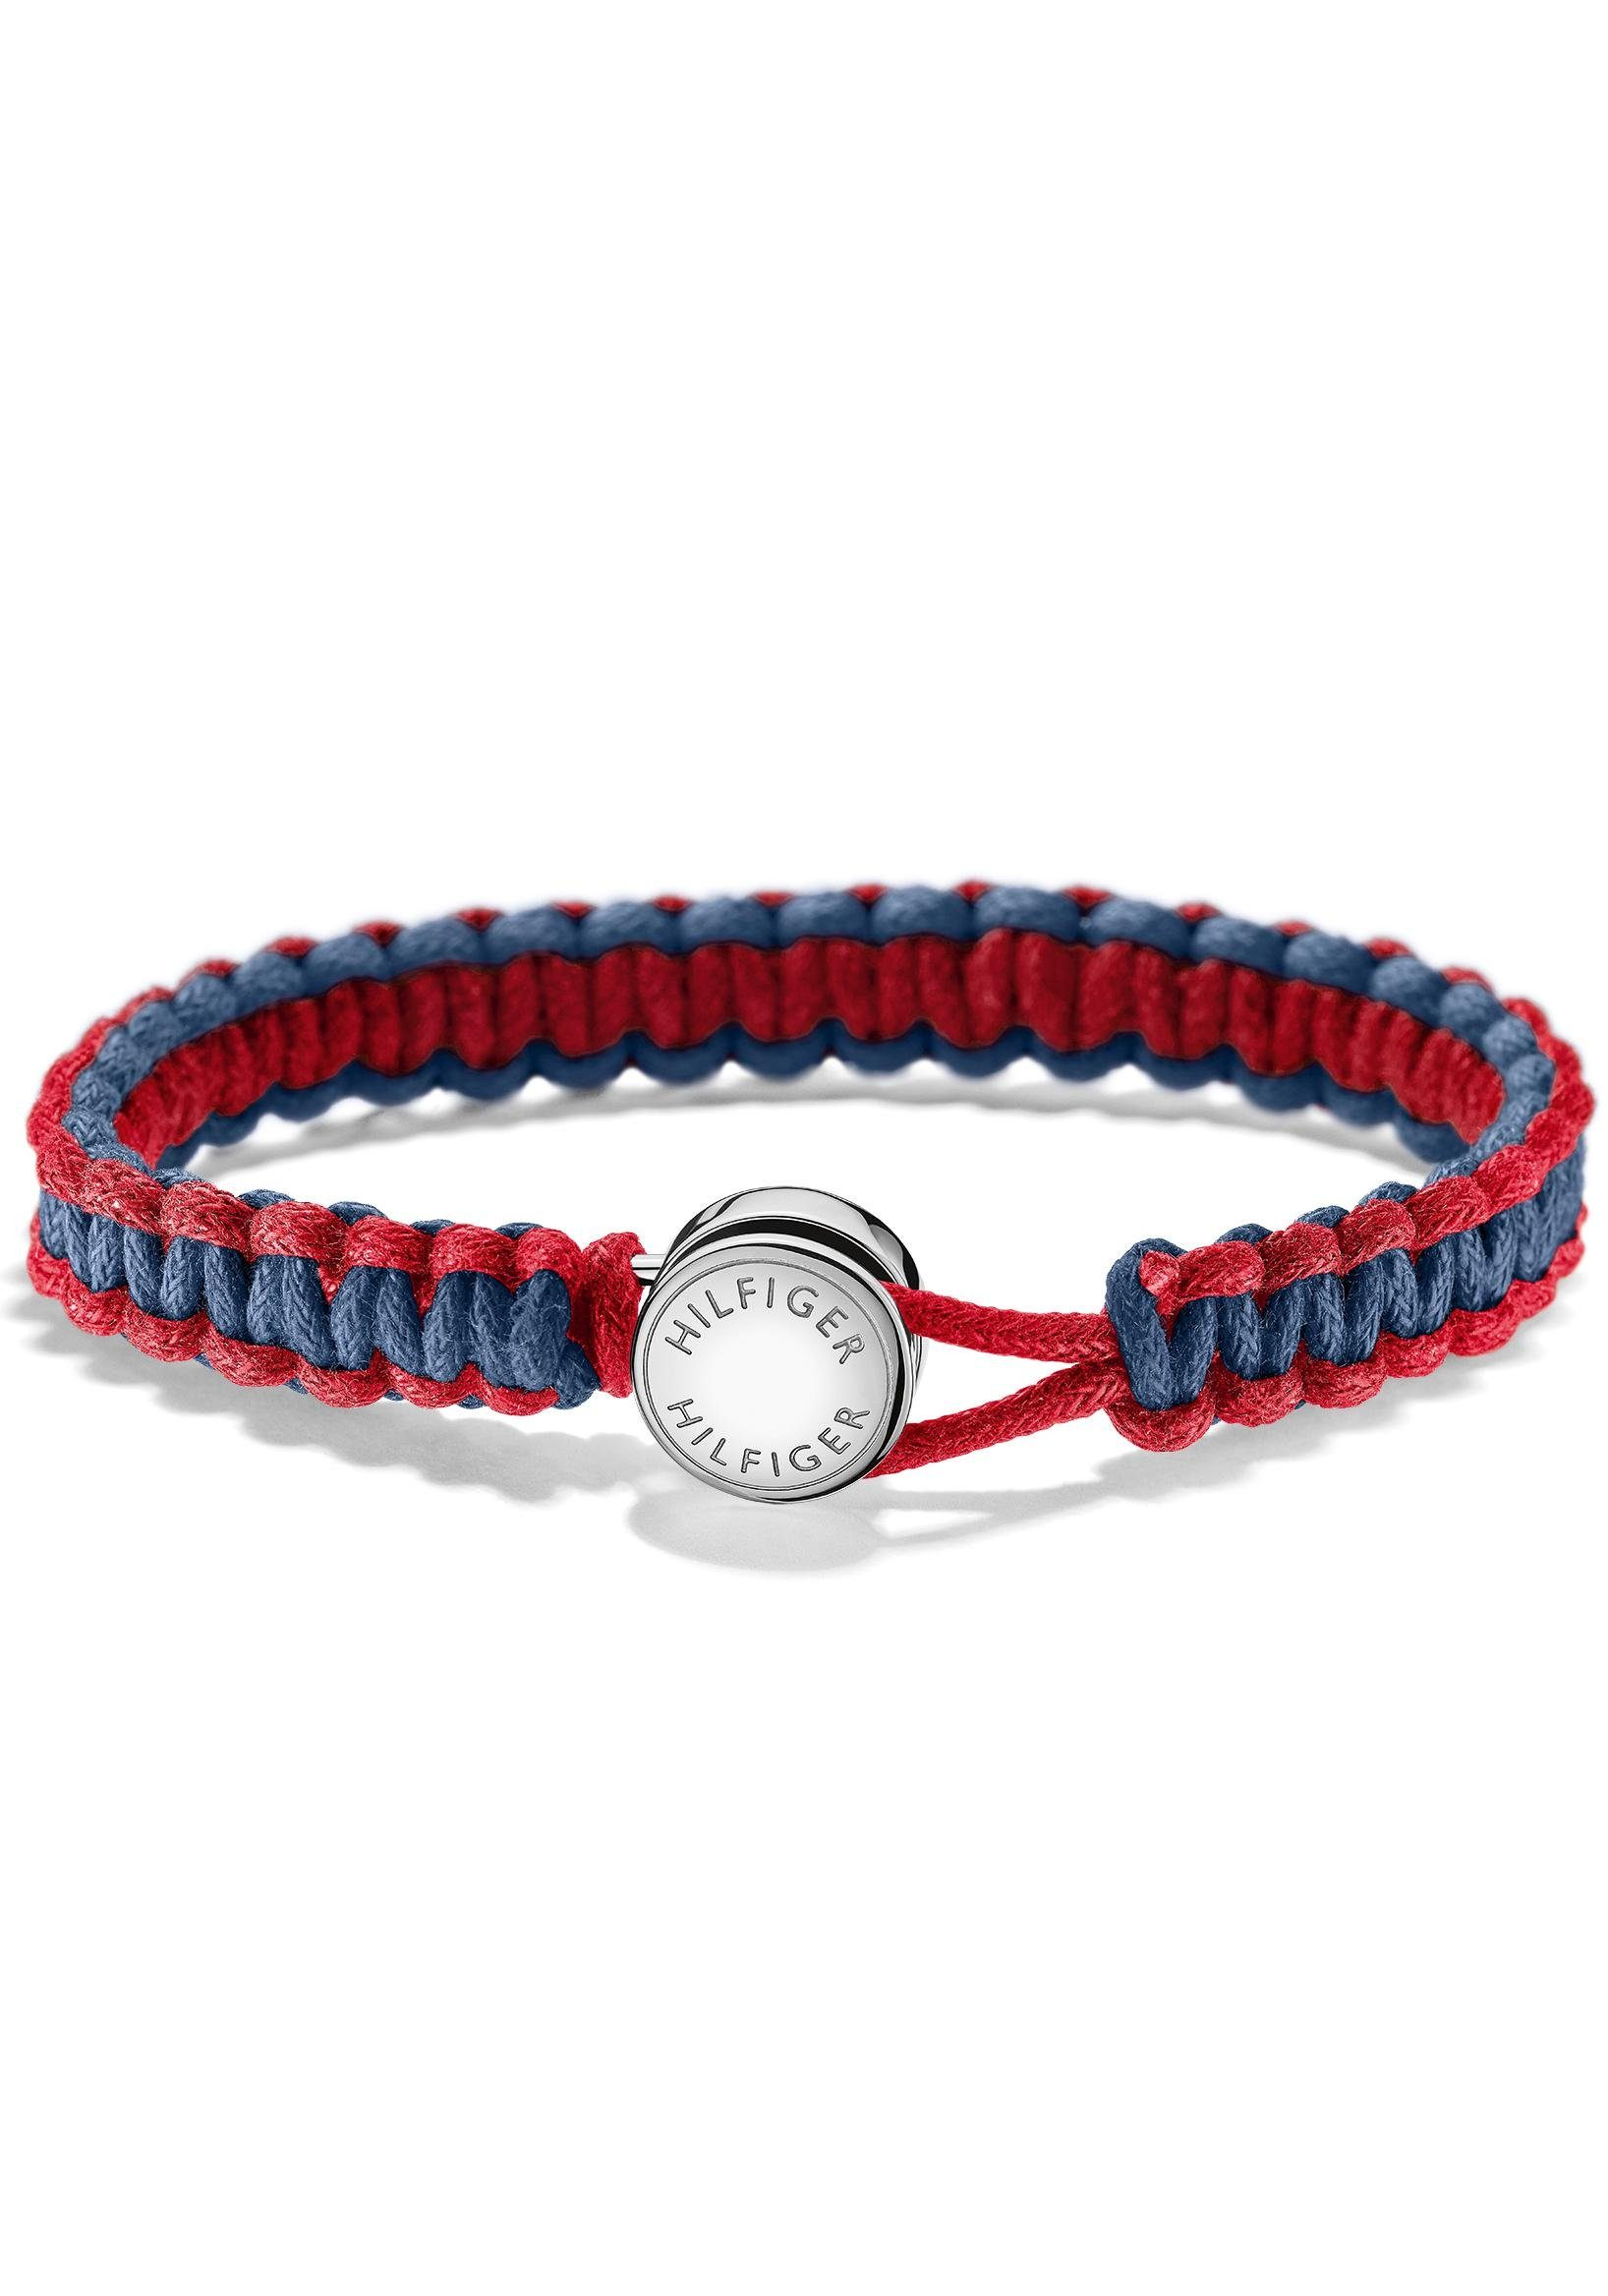 Makramee Armband Material Tommy Hilfiger Armband »makramee, Men's Casual, 2700944